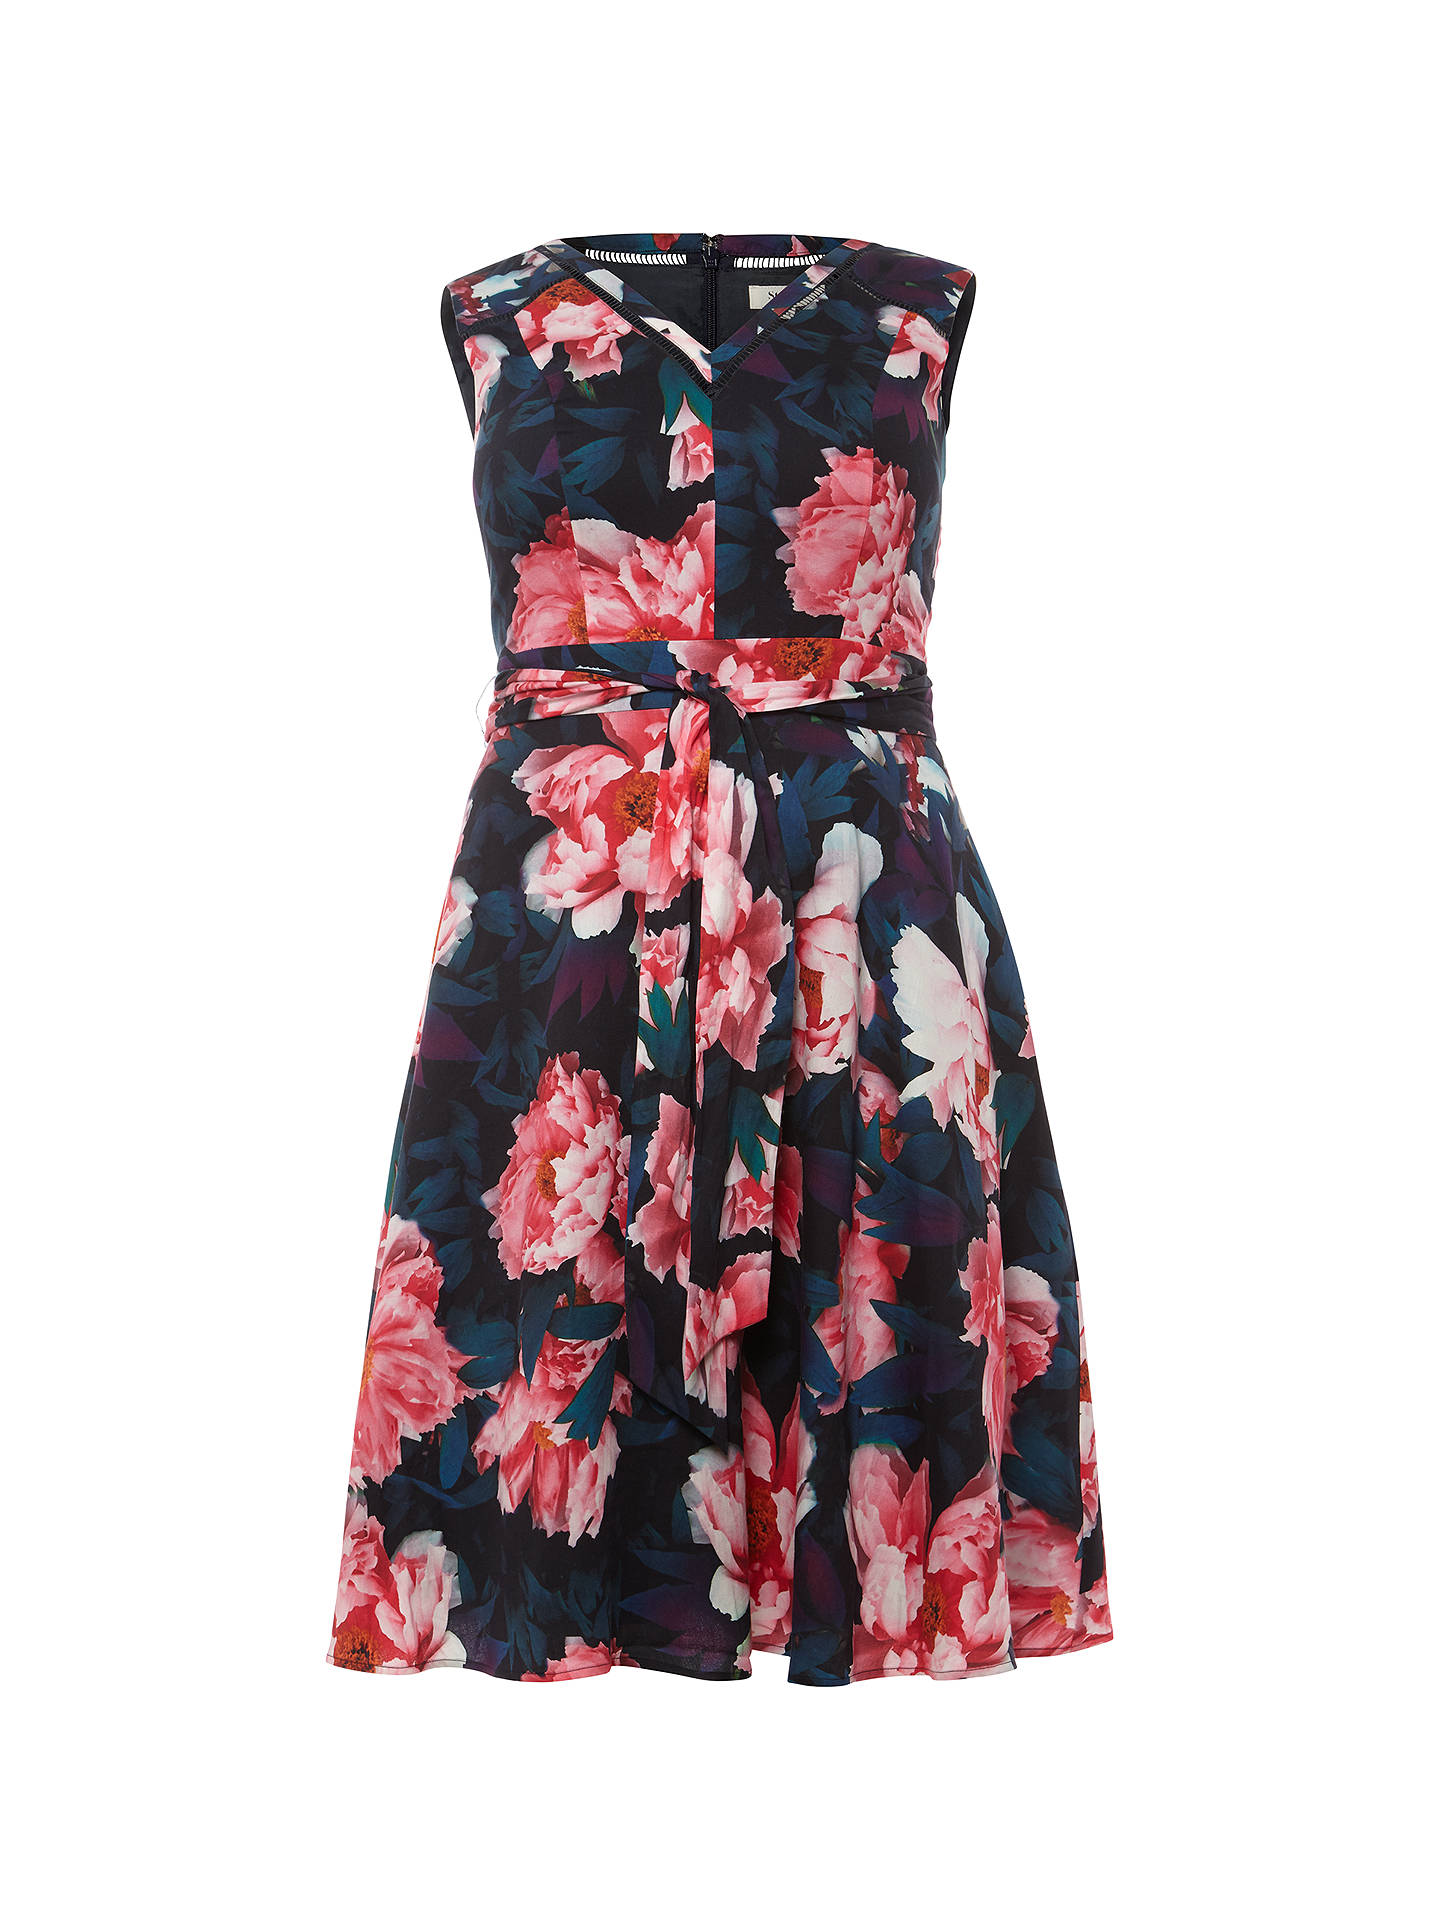 BuyStudio 8 Everly Floral Dress, Multi, 12 Online at johnlewis.com